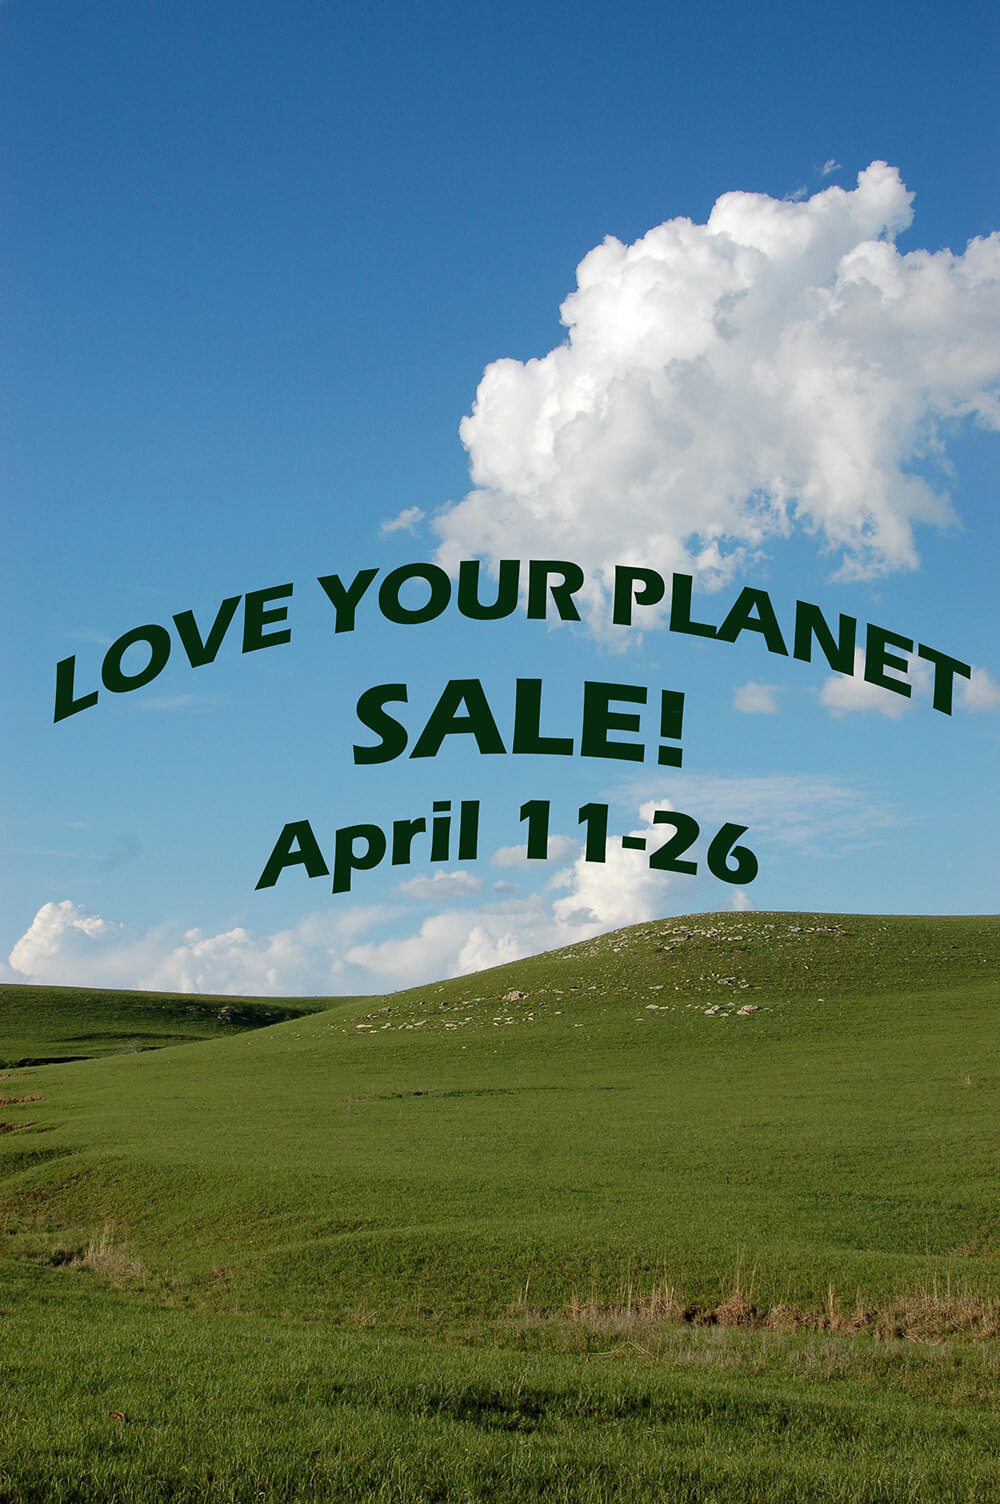 Love Your Planet Sale